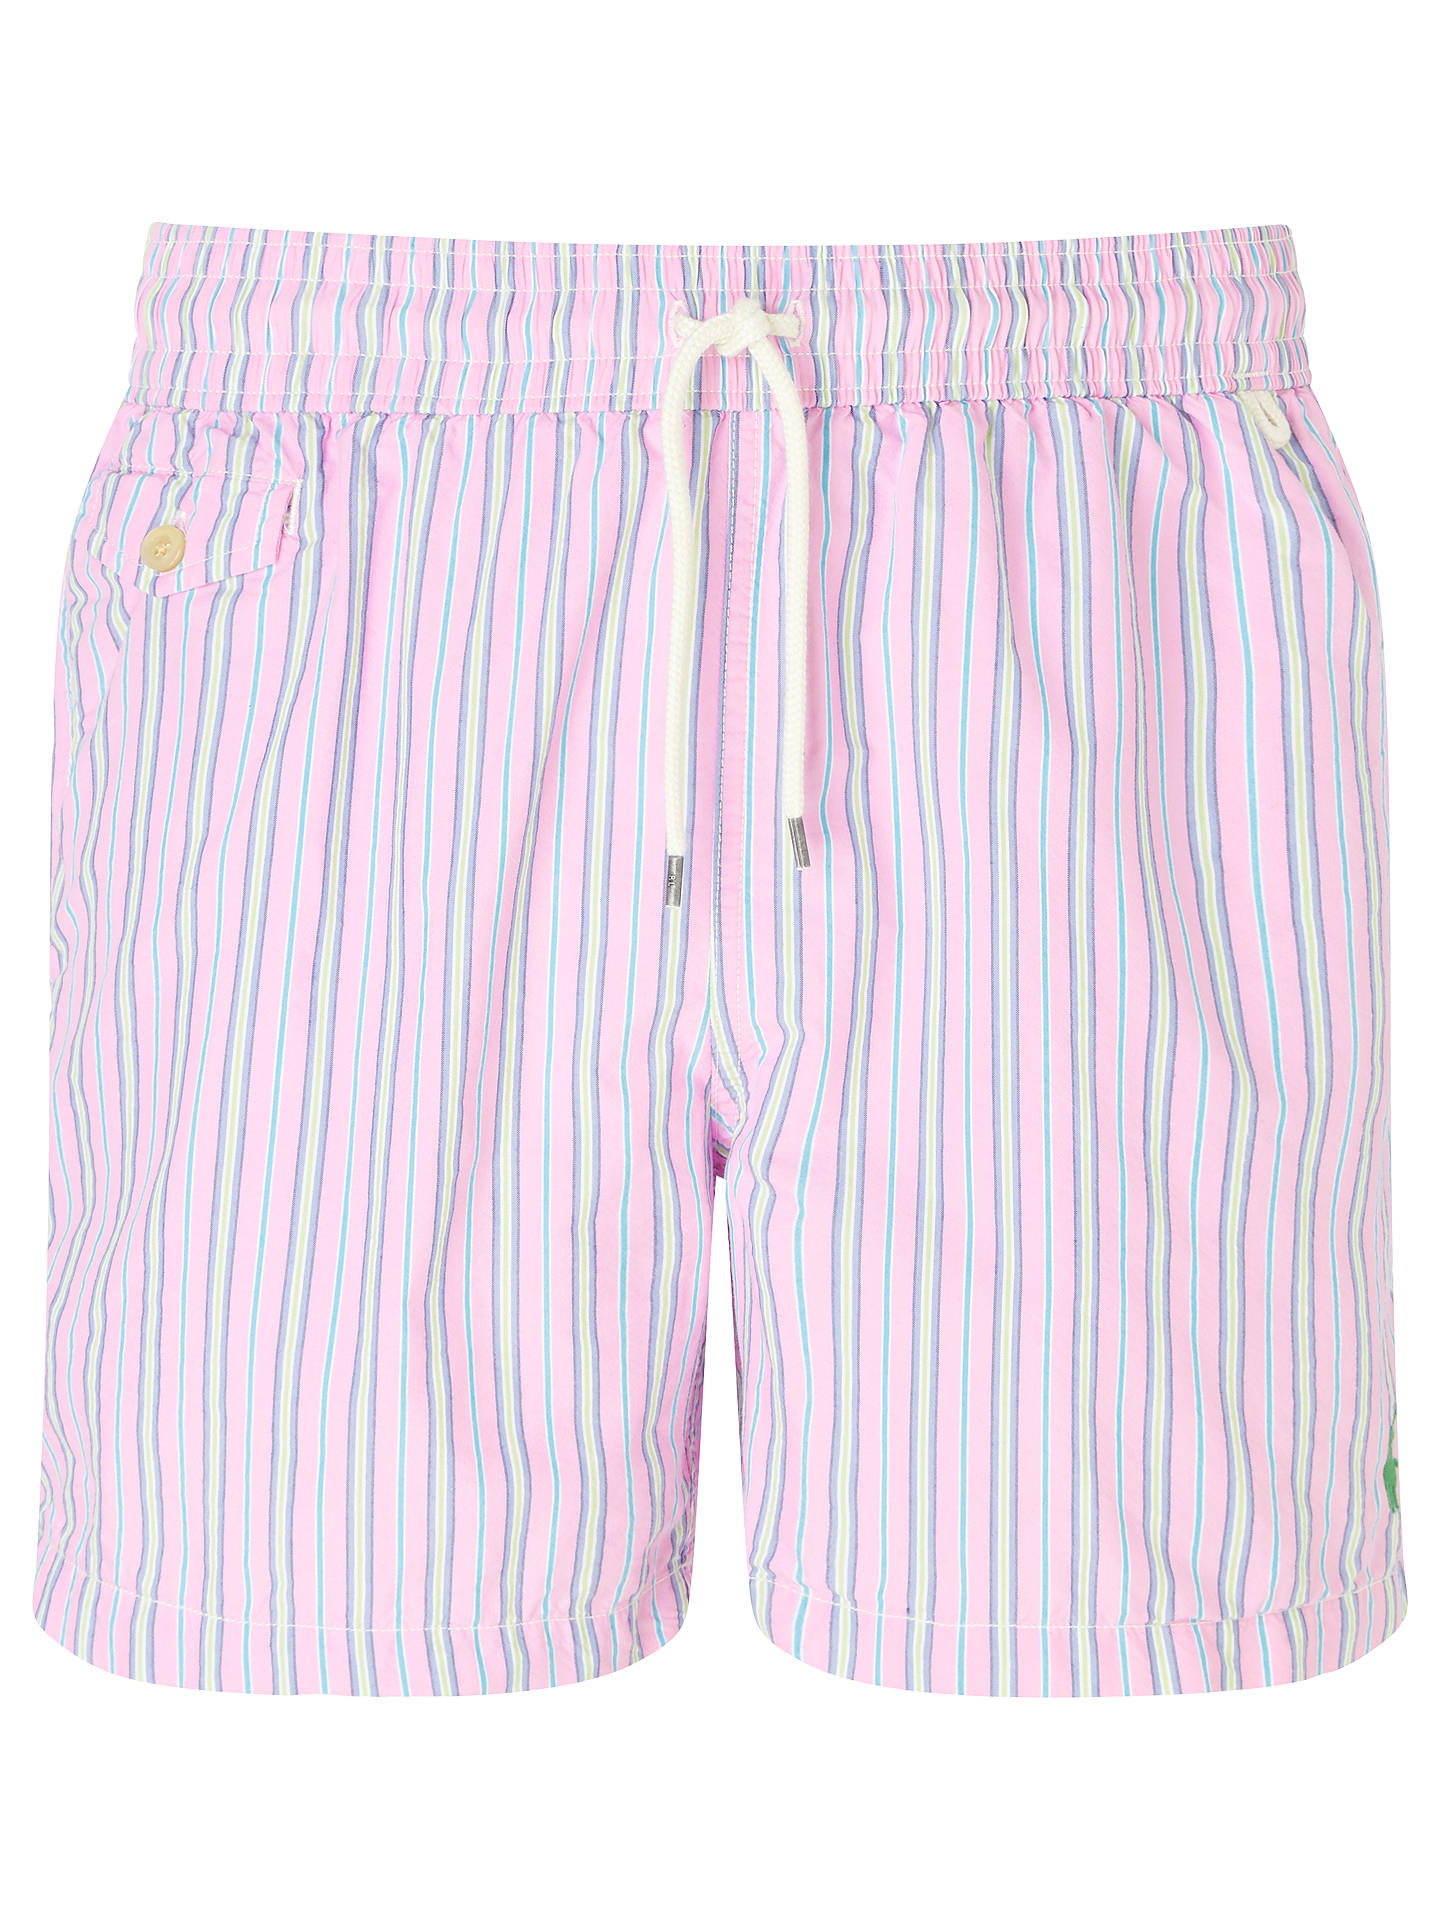 72c0aab024ecd Buy Polo Ralph Lauren Traveler Stripe Swim Shorts, Pink, S Online at  johnlewis.